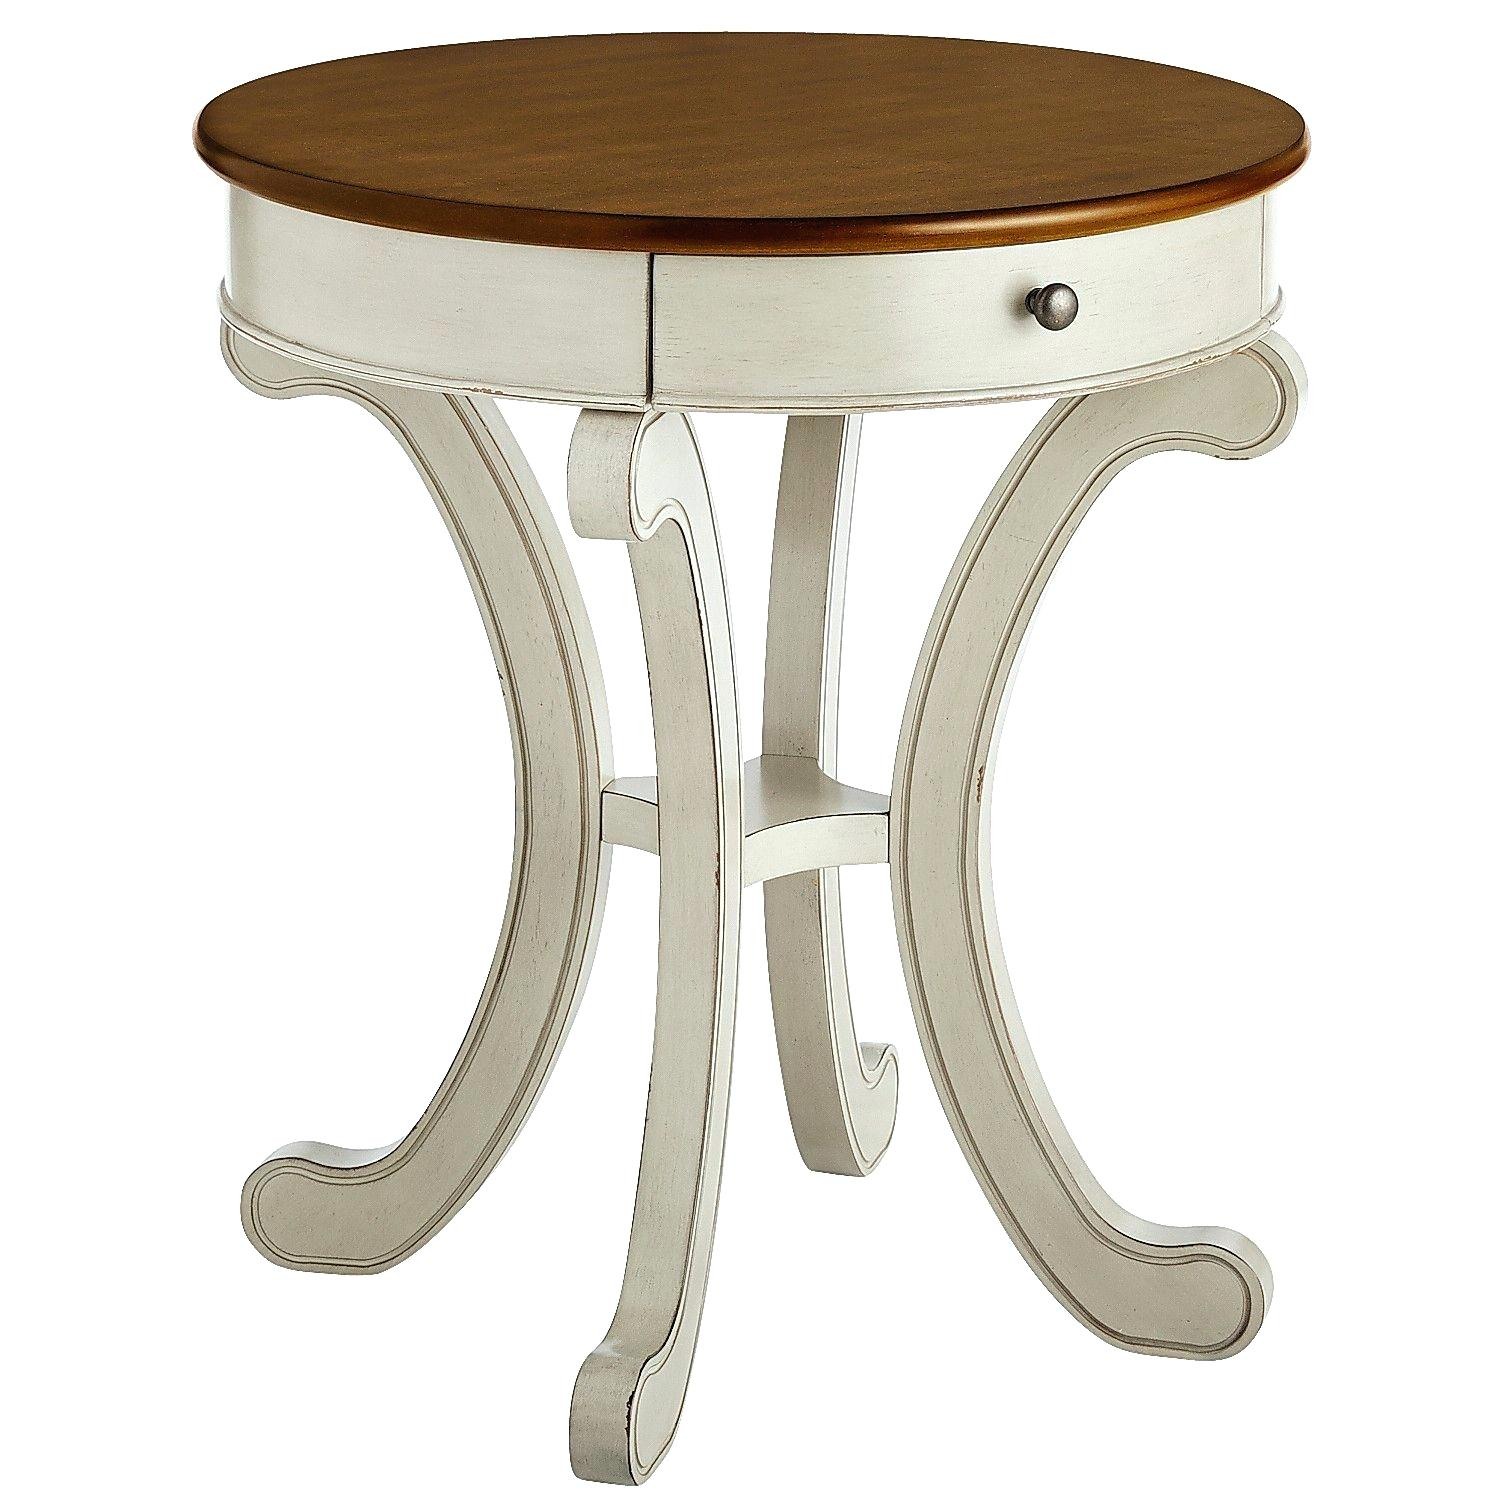 pier accent tables outdoor half moon glass table small metal garden round dining for home ornaments modern kitchen clocks skirts decorator barn door designs tiffany dragonfly lamp